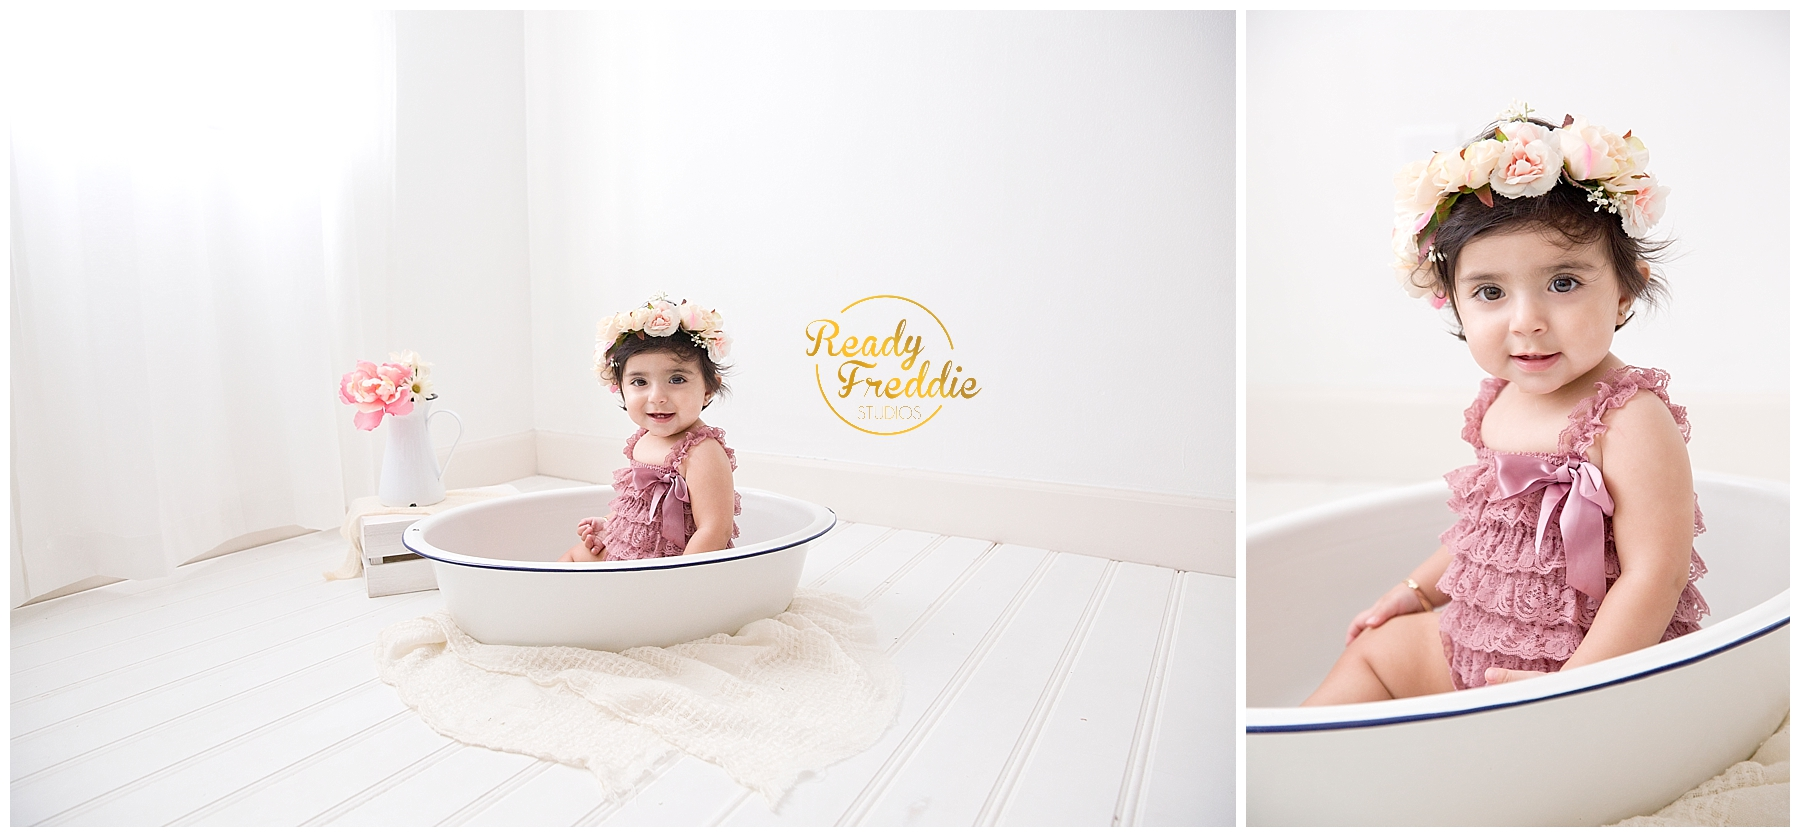 First year pictures girl with floral crown in enamel bath tub in natural light photography studio in Miami FL